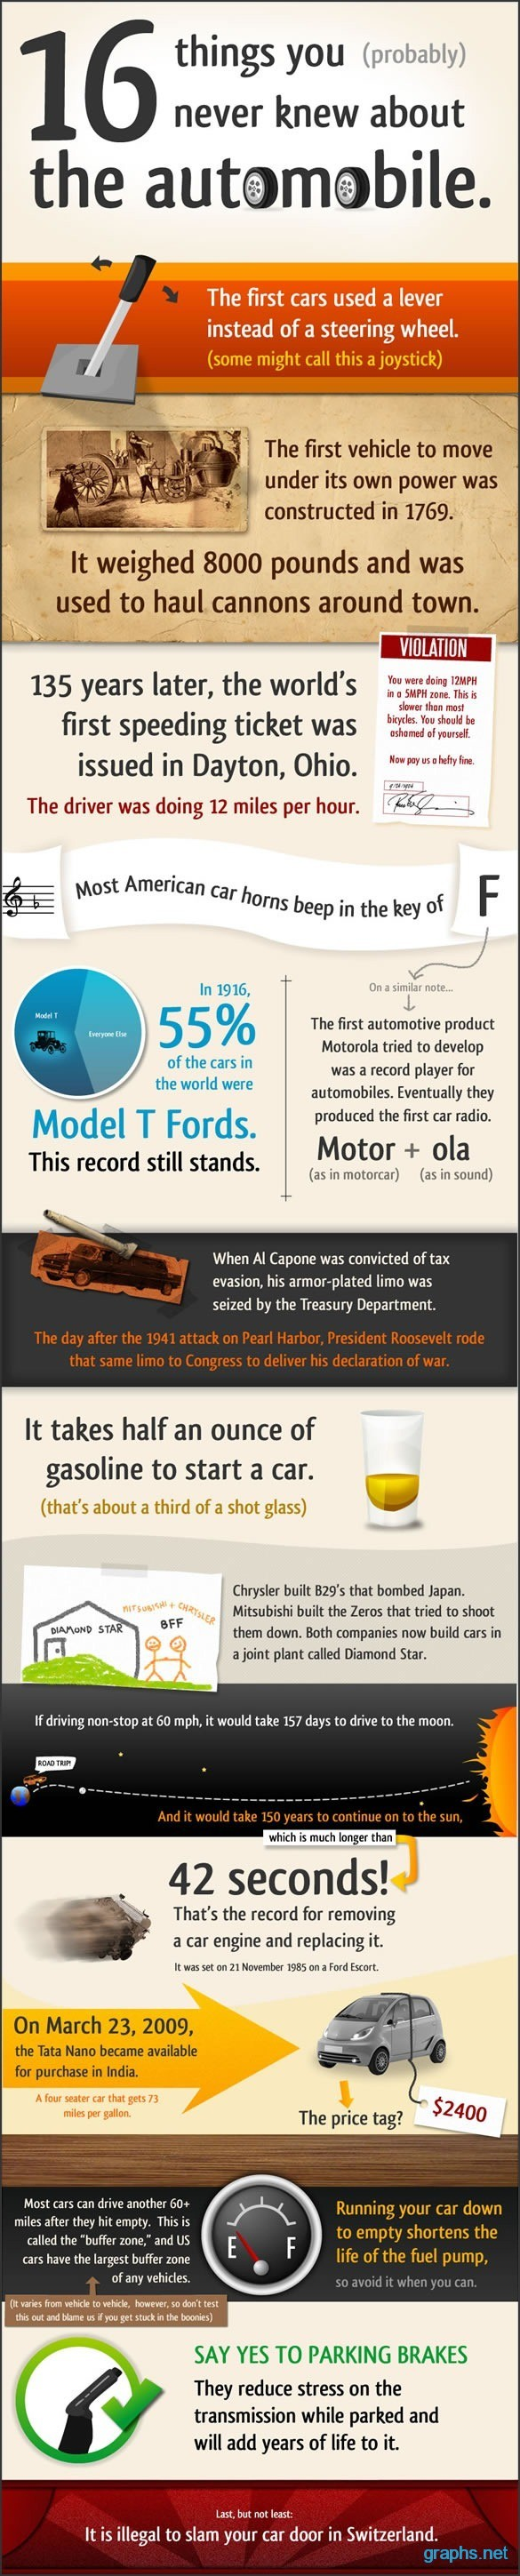 Interesting Facts About Automobiles